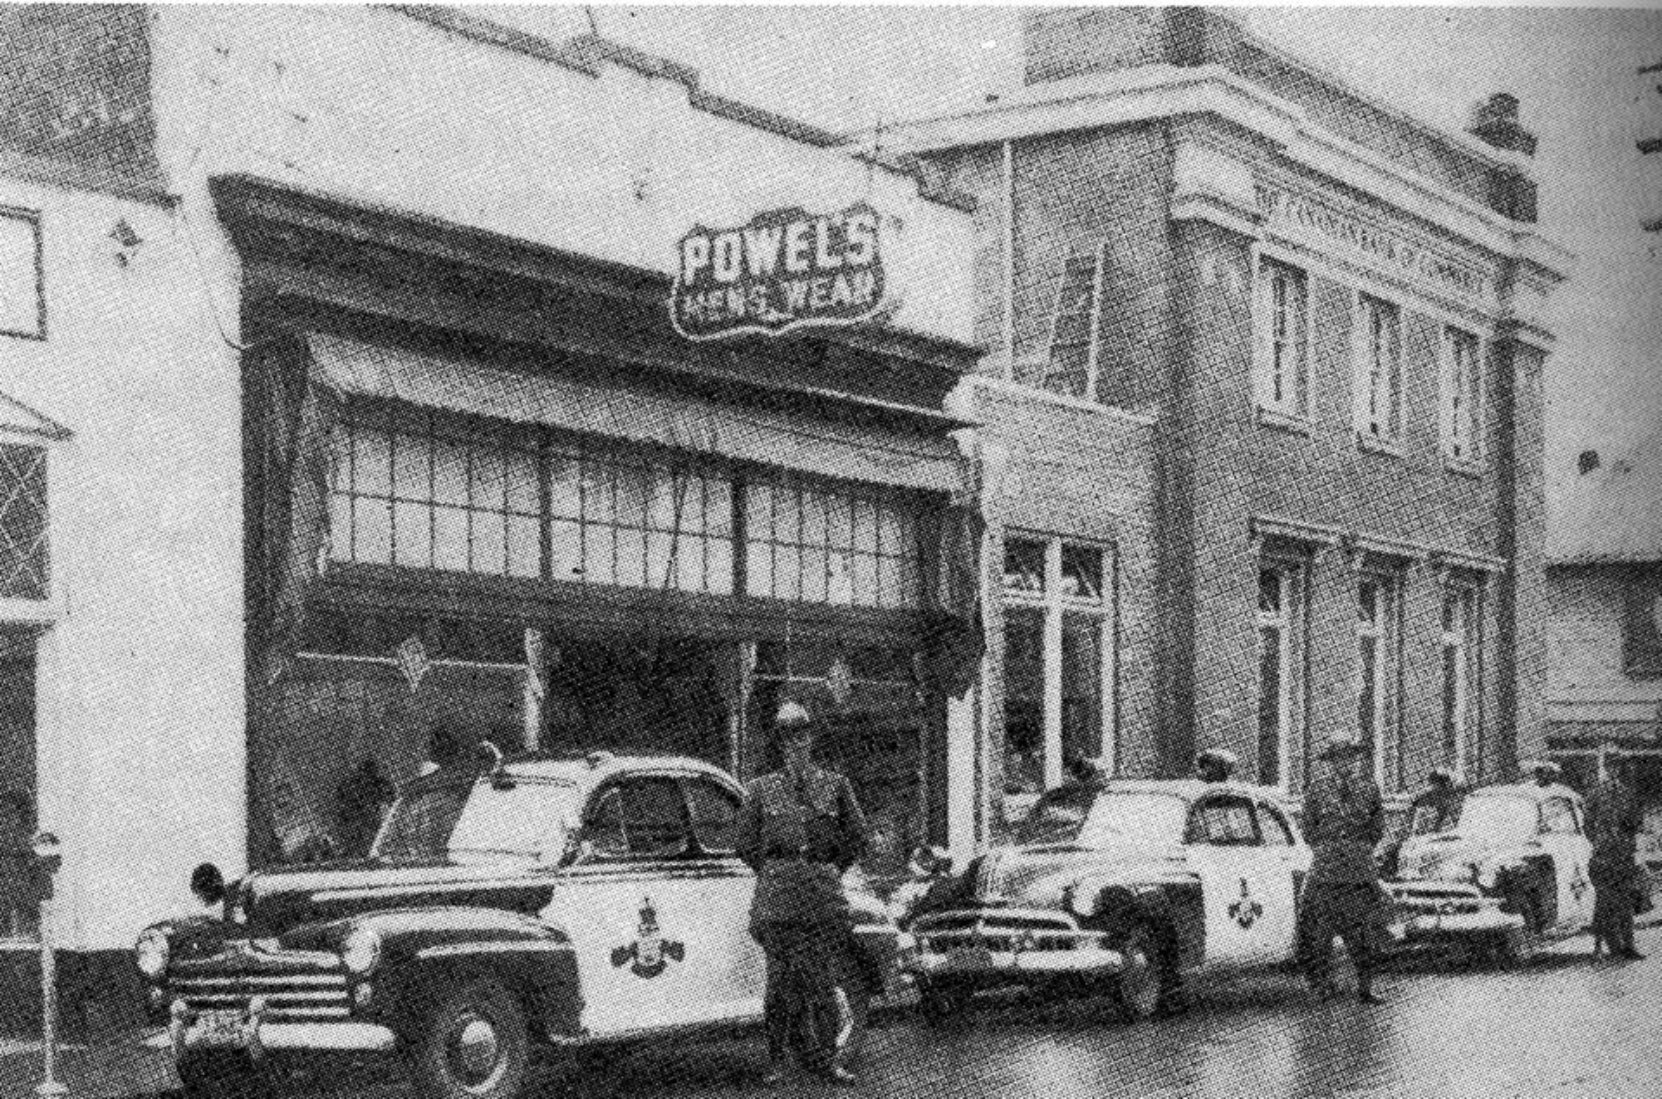 45 Craig Street as Powel's Men's Wear, circa 1950, with B.C. Provincial Police officers in front. The building on the right was the Canadian bank of Commerce, now demolished. The CIBC branch now stands on that site. (Note: we are currently checking for the source of this photo)